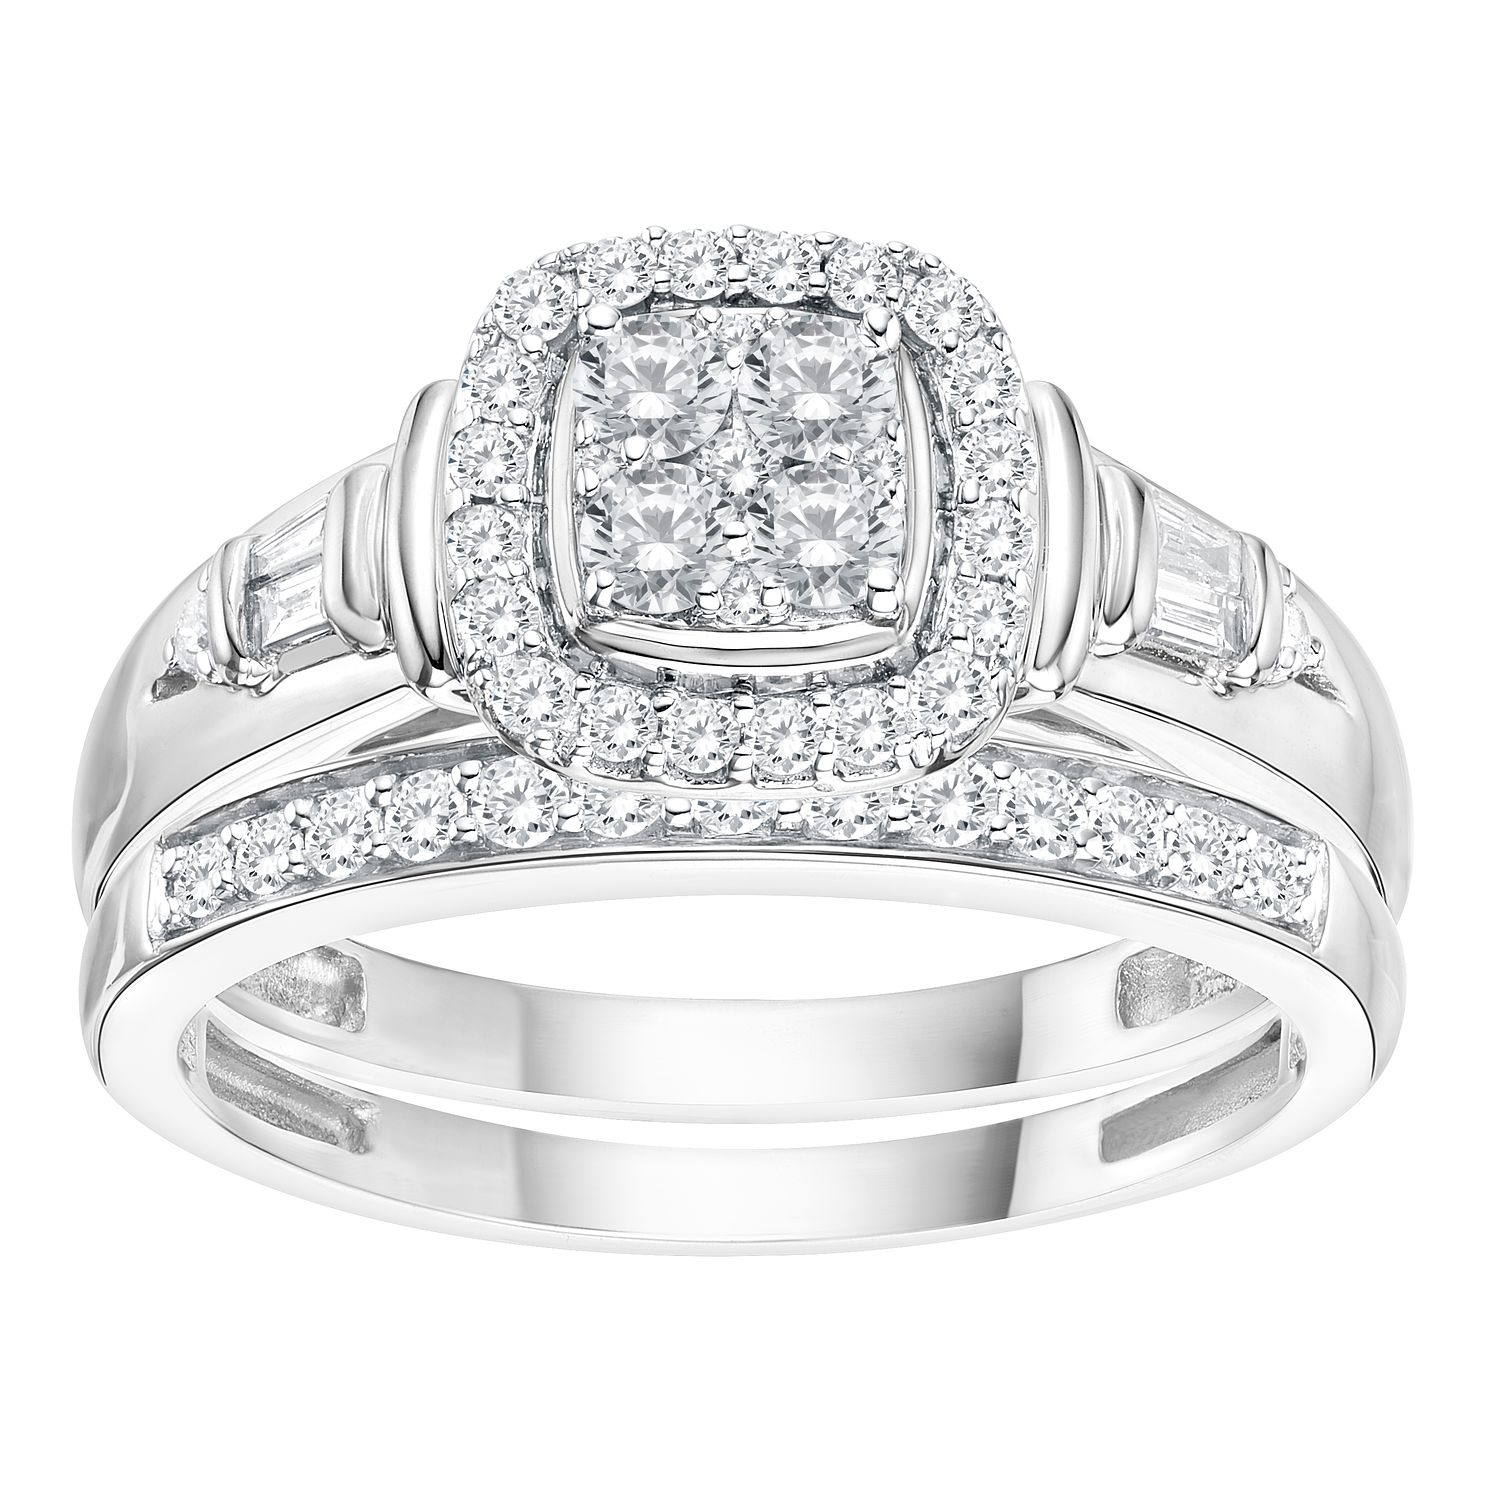 ring perfect engagement my ideas pin wedding pinterest rings